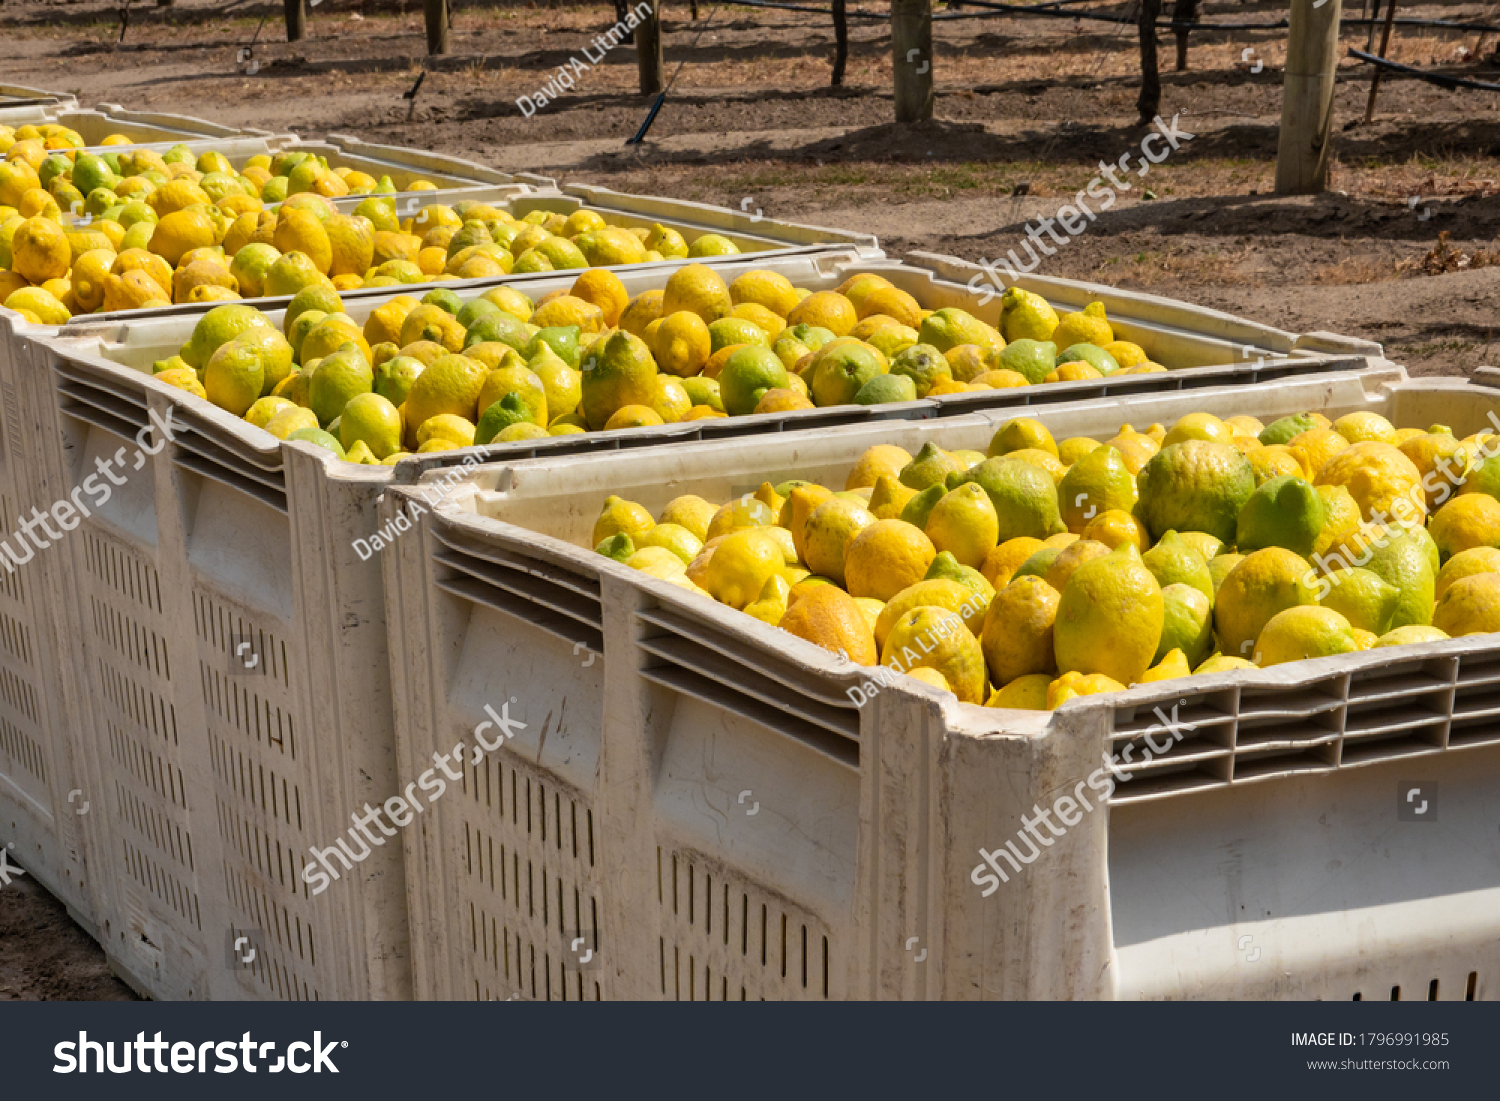 Crates of freshly picked lemons ready for shipping, in the Salinas Valley of central California, in Monterey County,